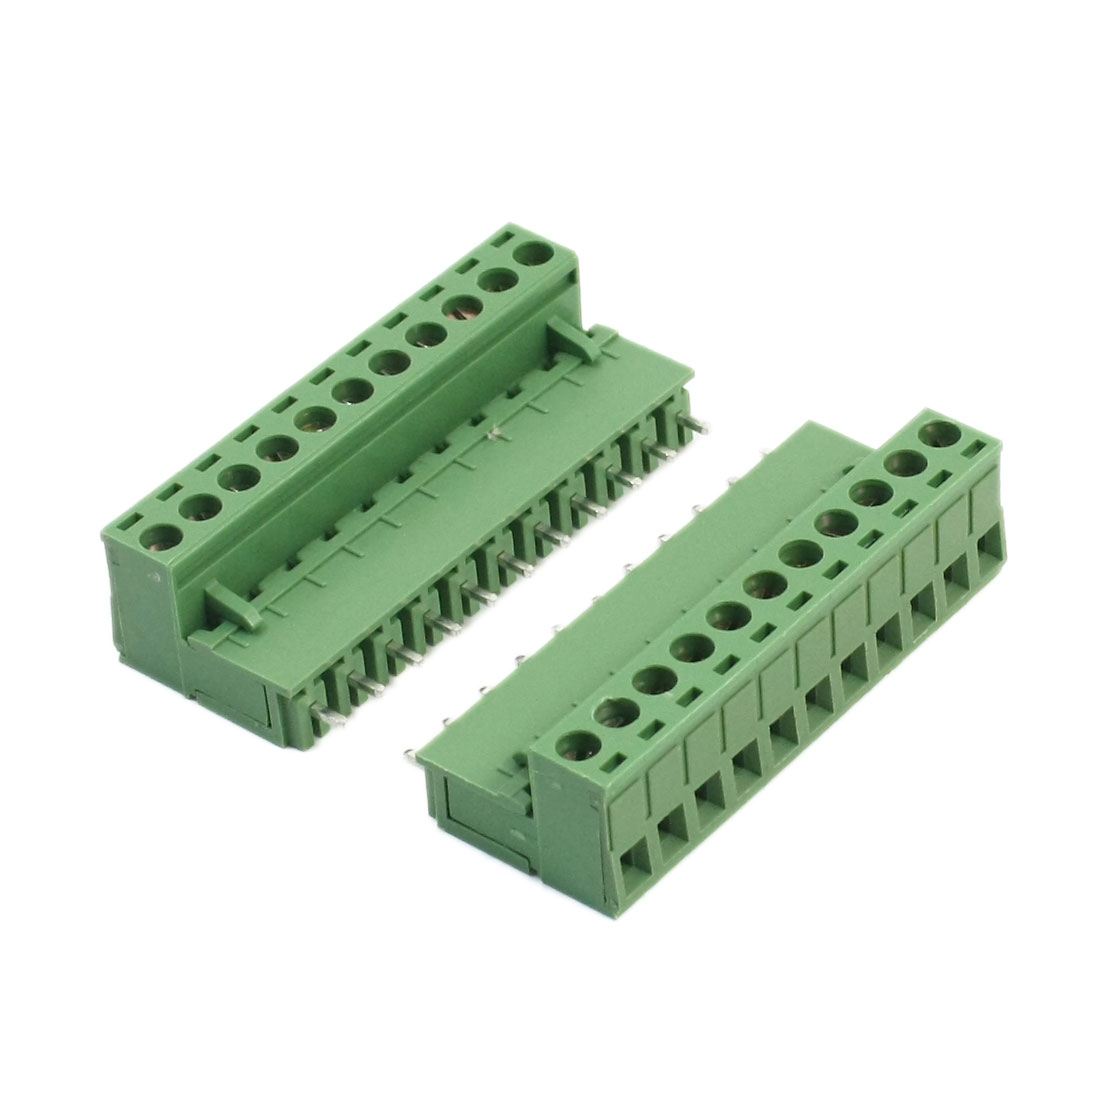 2Pcs 2EDG AC 300V 10A 12-24AWG 5.08mm Pitch 11-Pin PCB Mounting Green Screw Terminal Barrier Block Connector